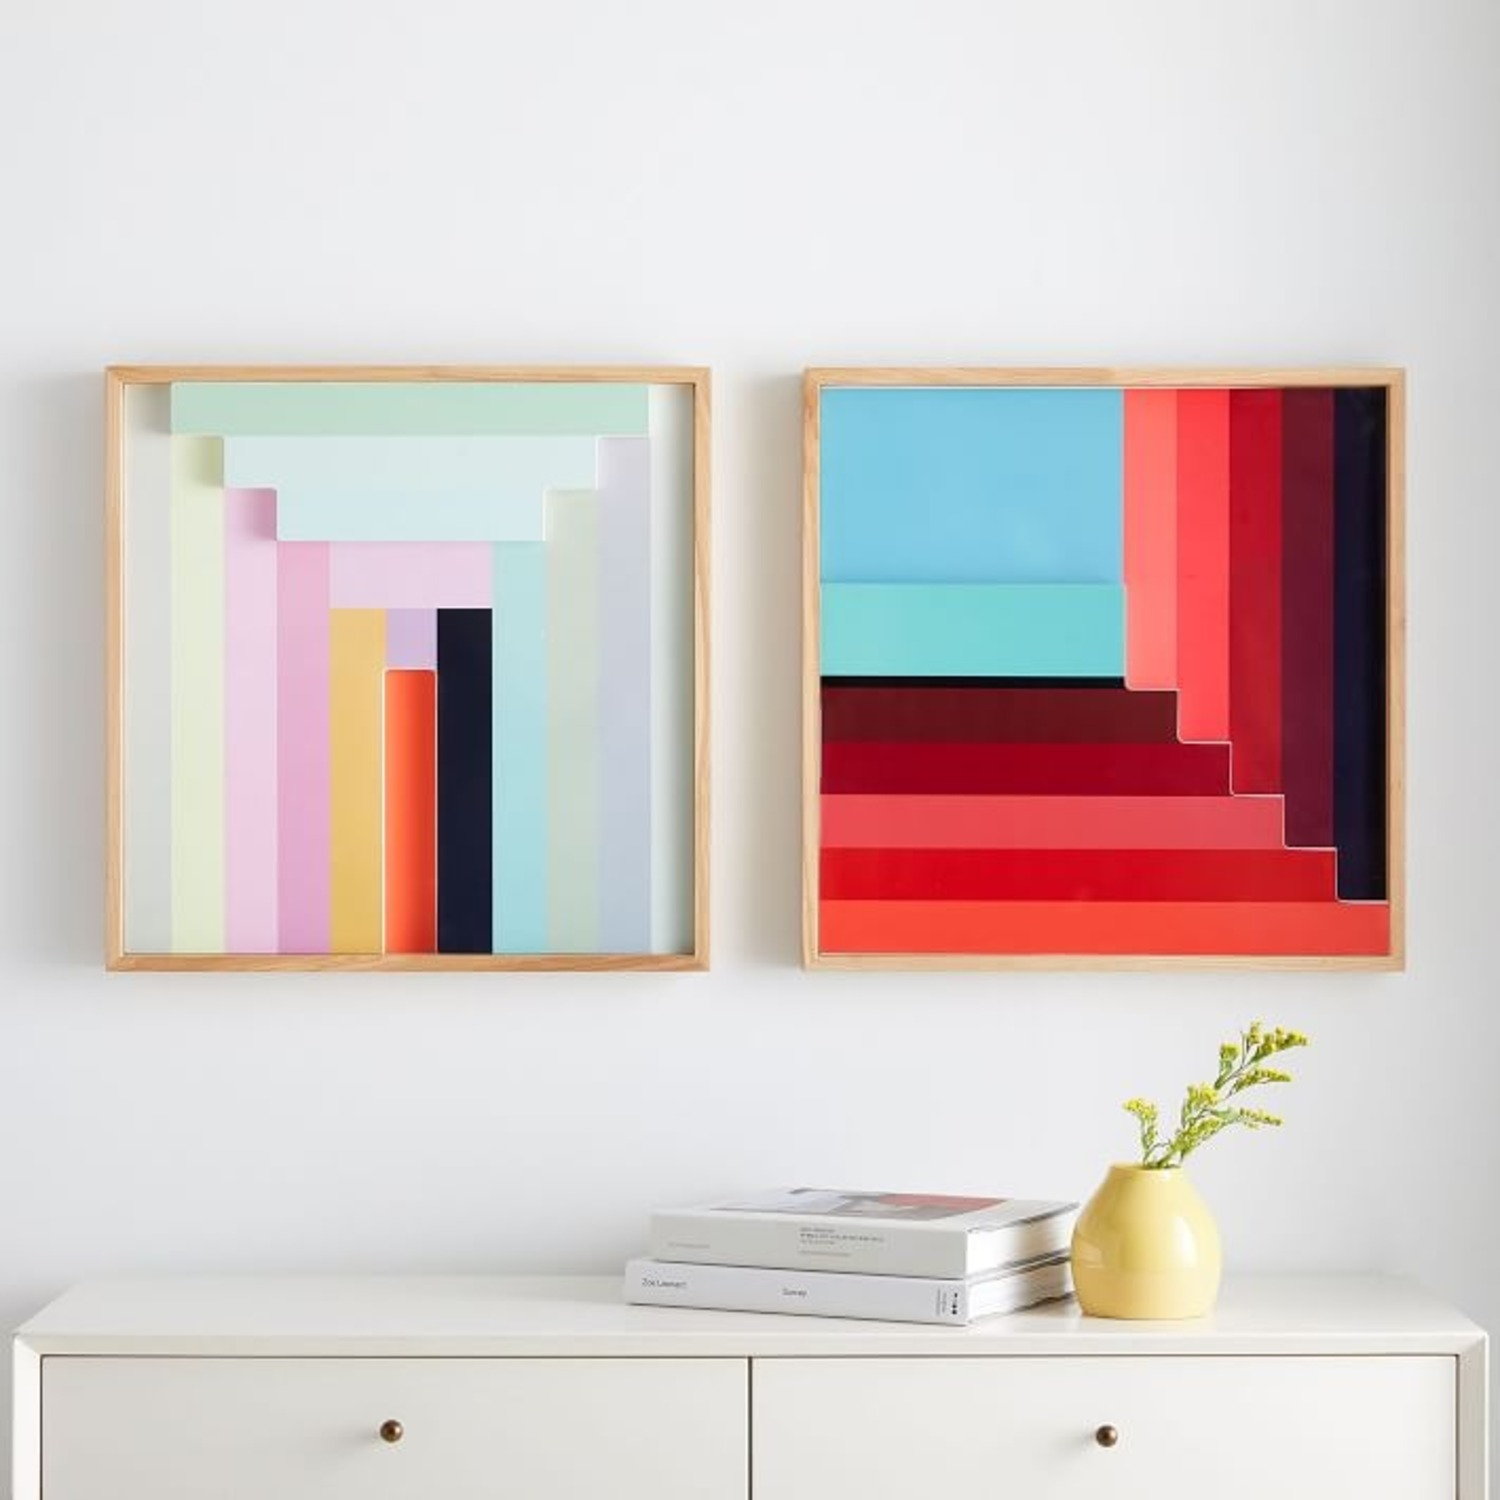 West Elm Margo Selby Colorblock Lacquer Wall Art - image-3